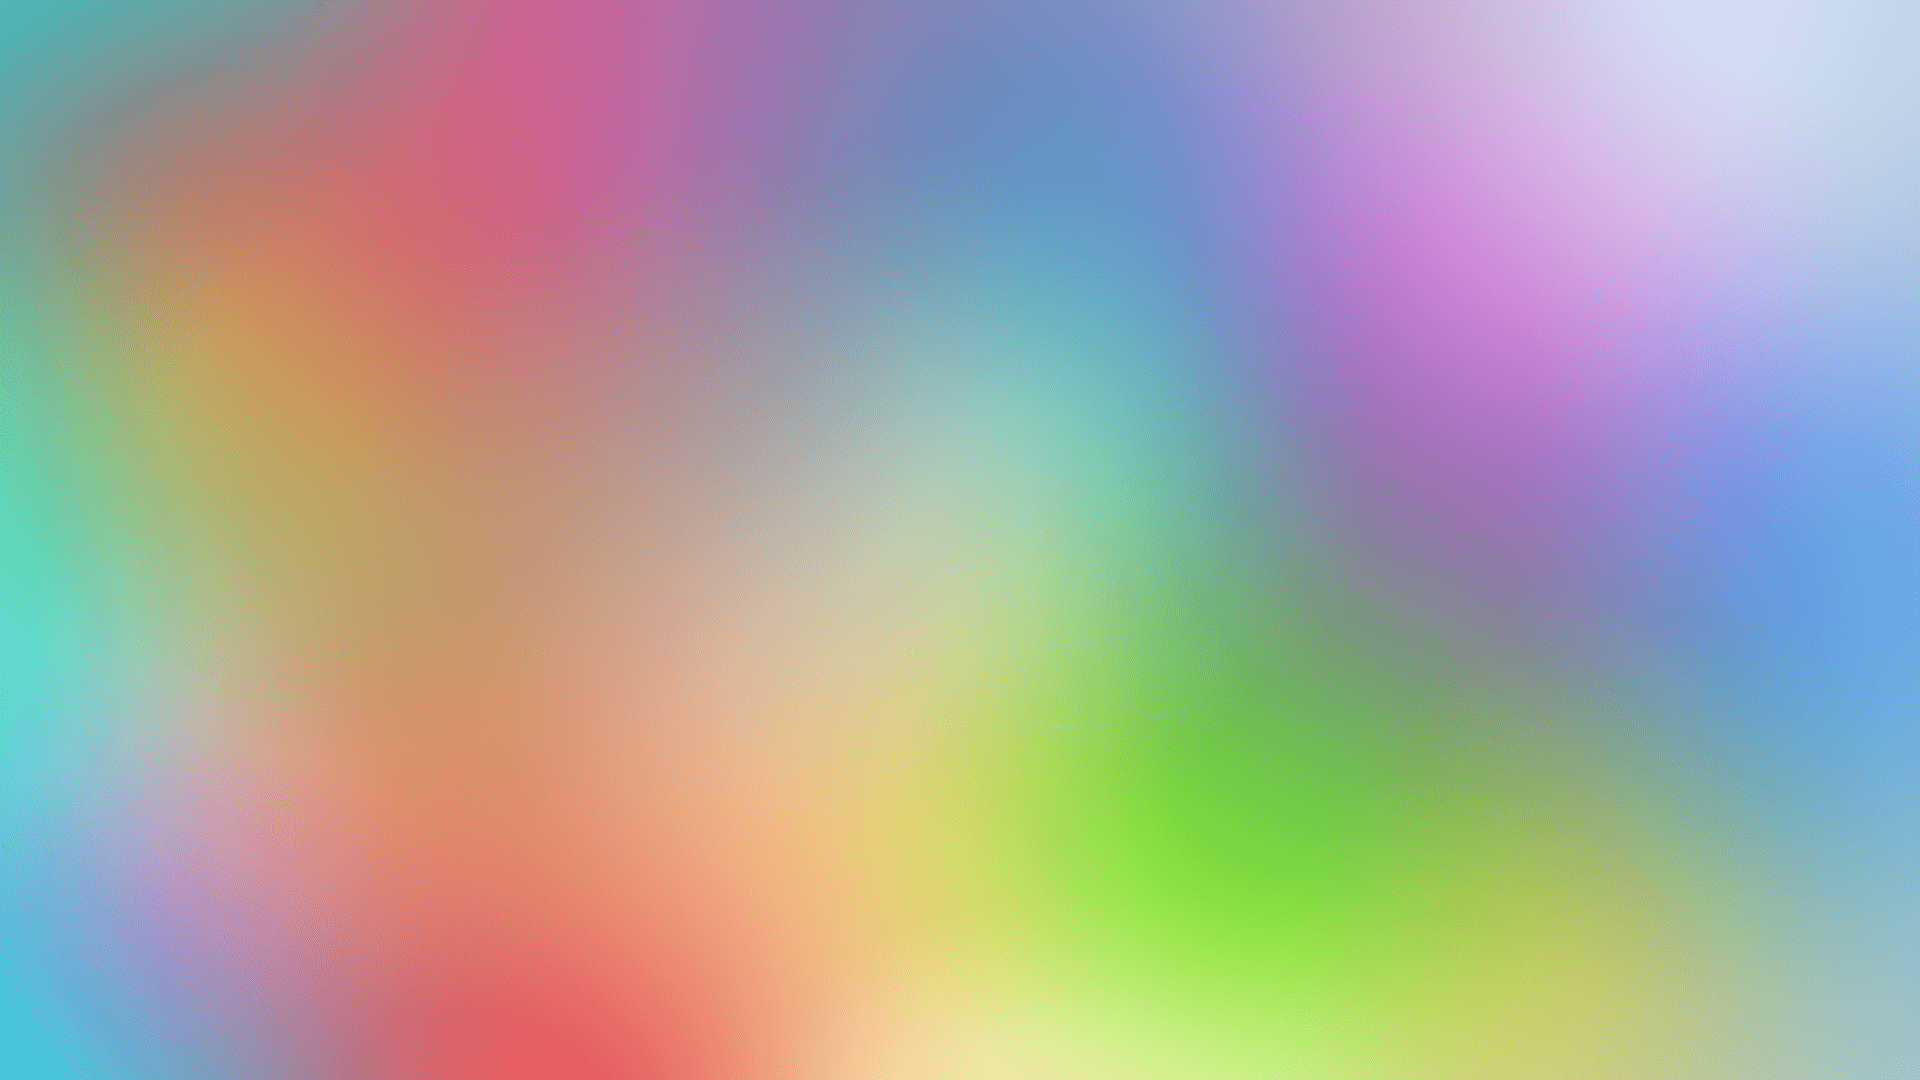 28+ [ Wallpaper Colors ] : Color Lines Wallpaper By Alanfernandoflores01 On Deviantart,Retro ...